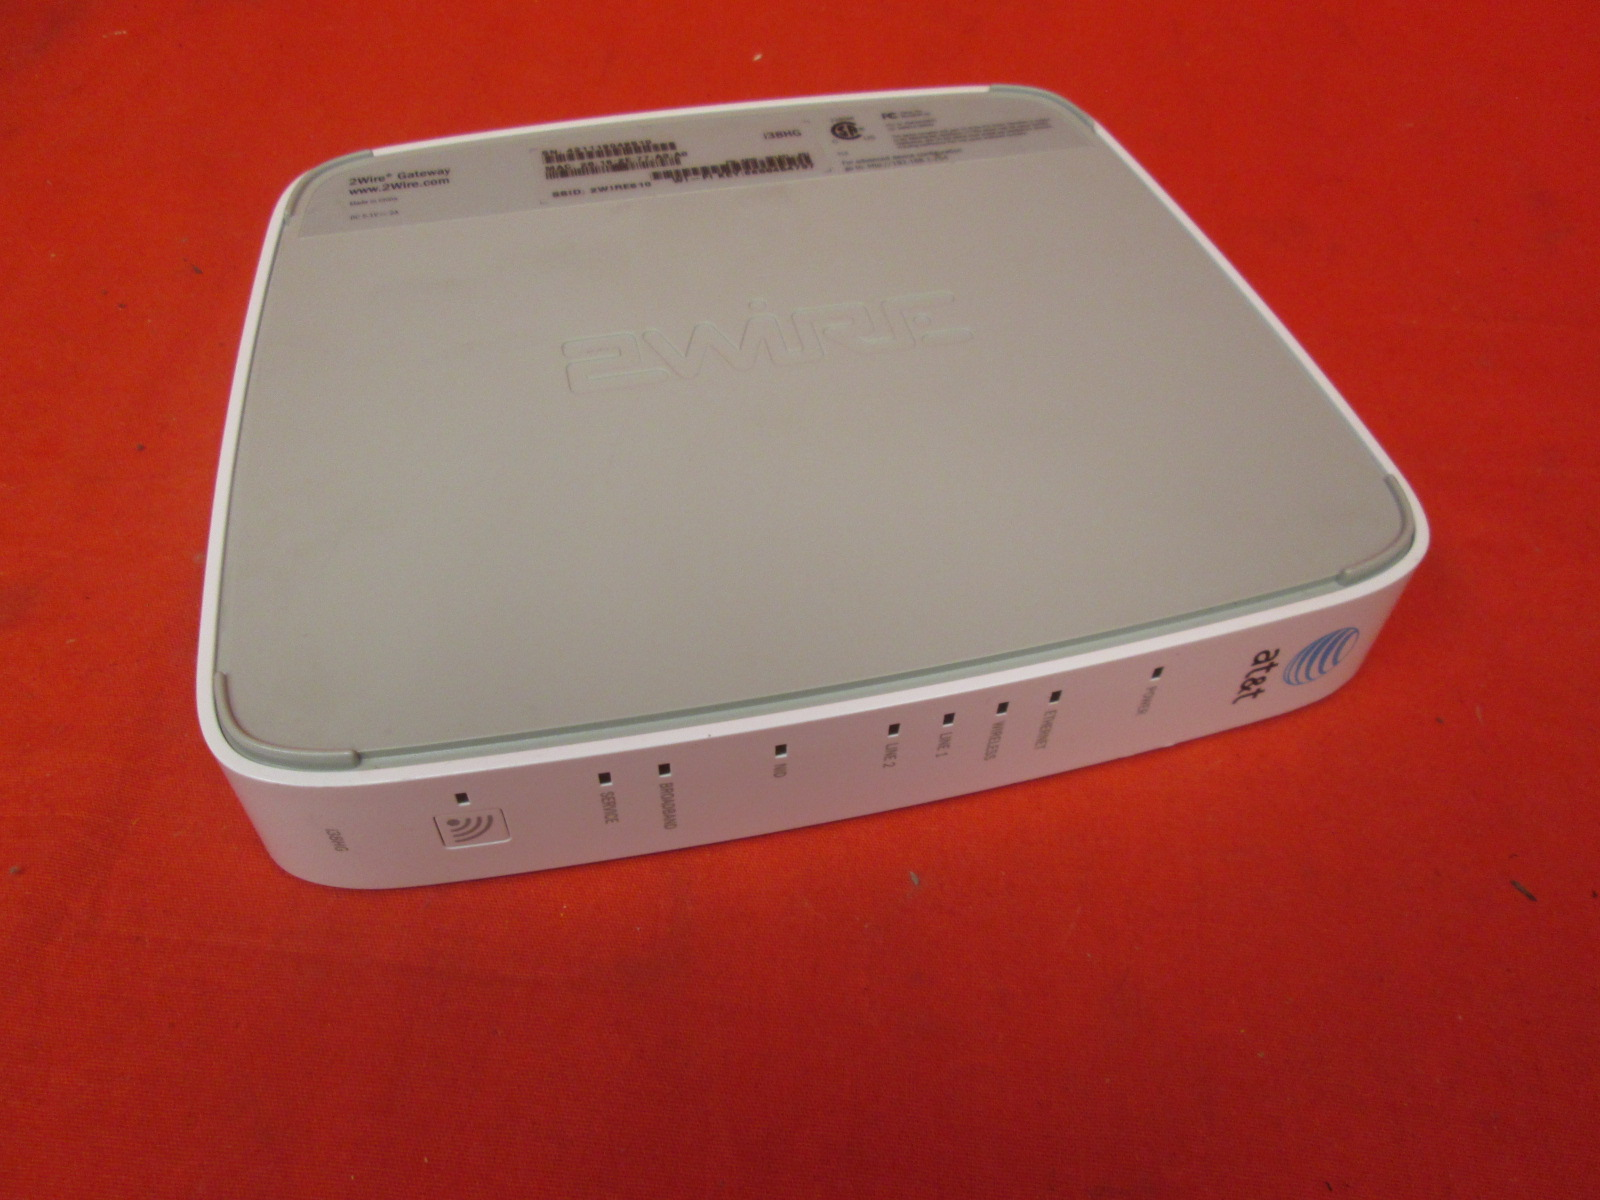 2WIRE Gateway Ethernet Router Model 2701HG-B Incomplete